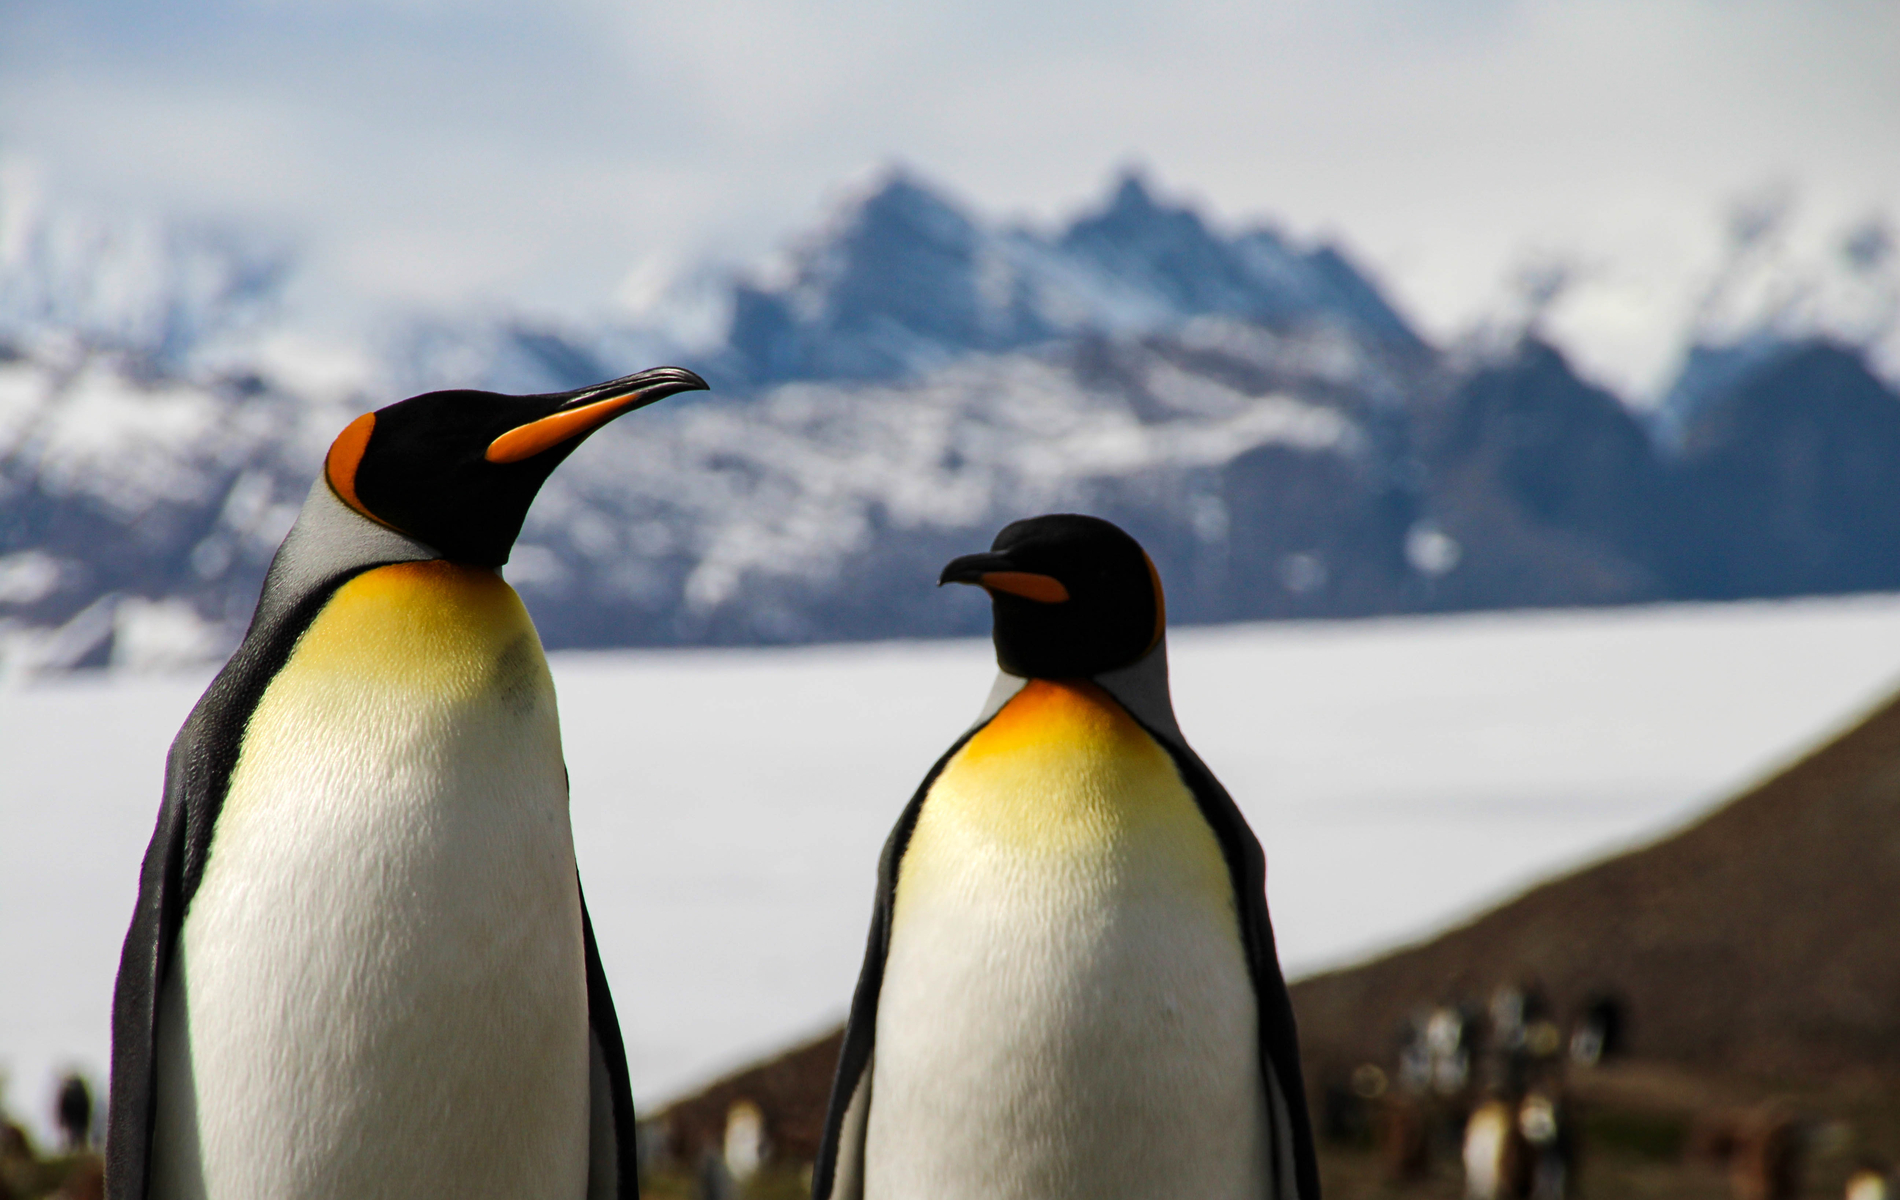 Penguin inhabitants of Antarctica